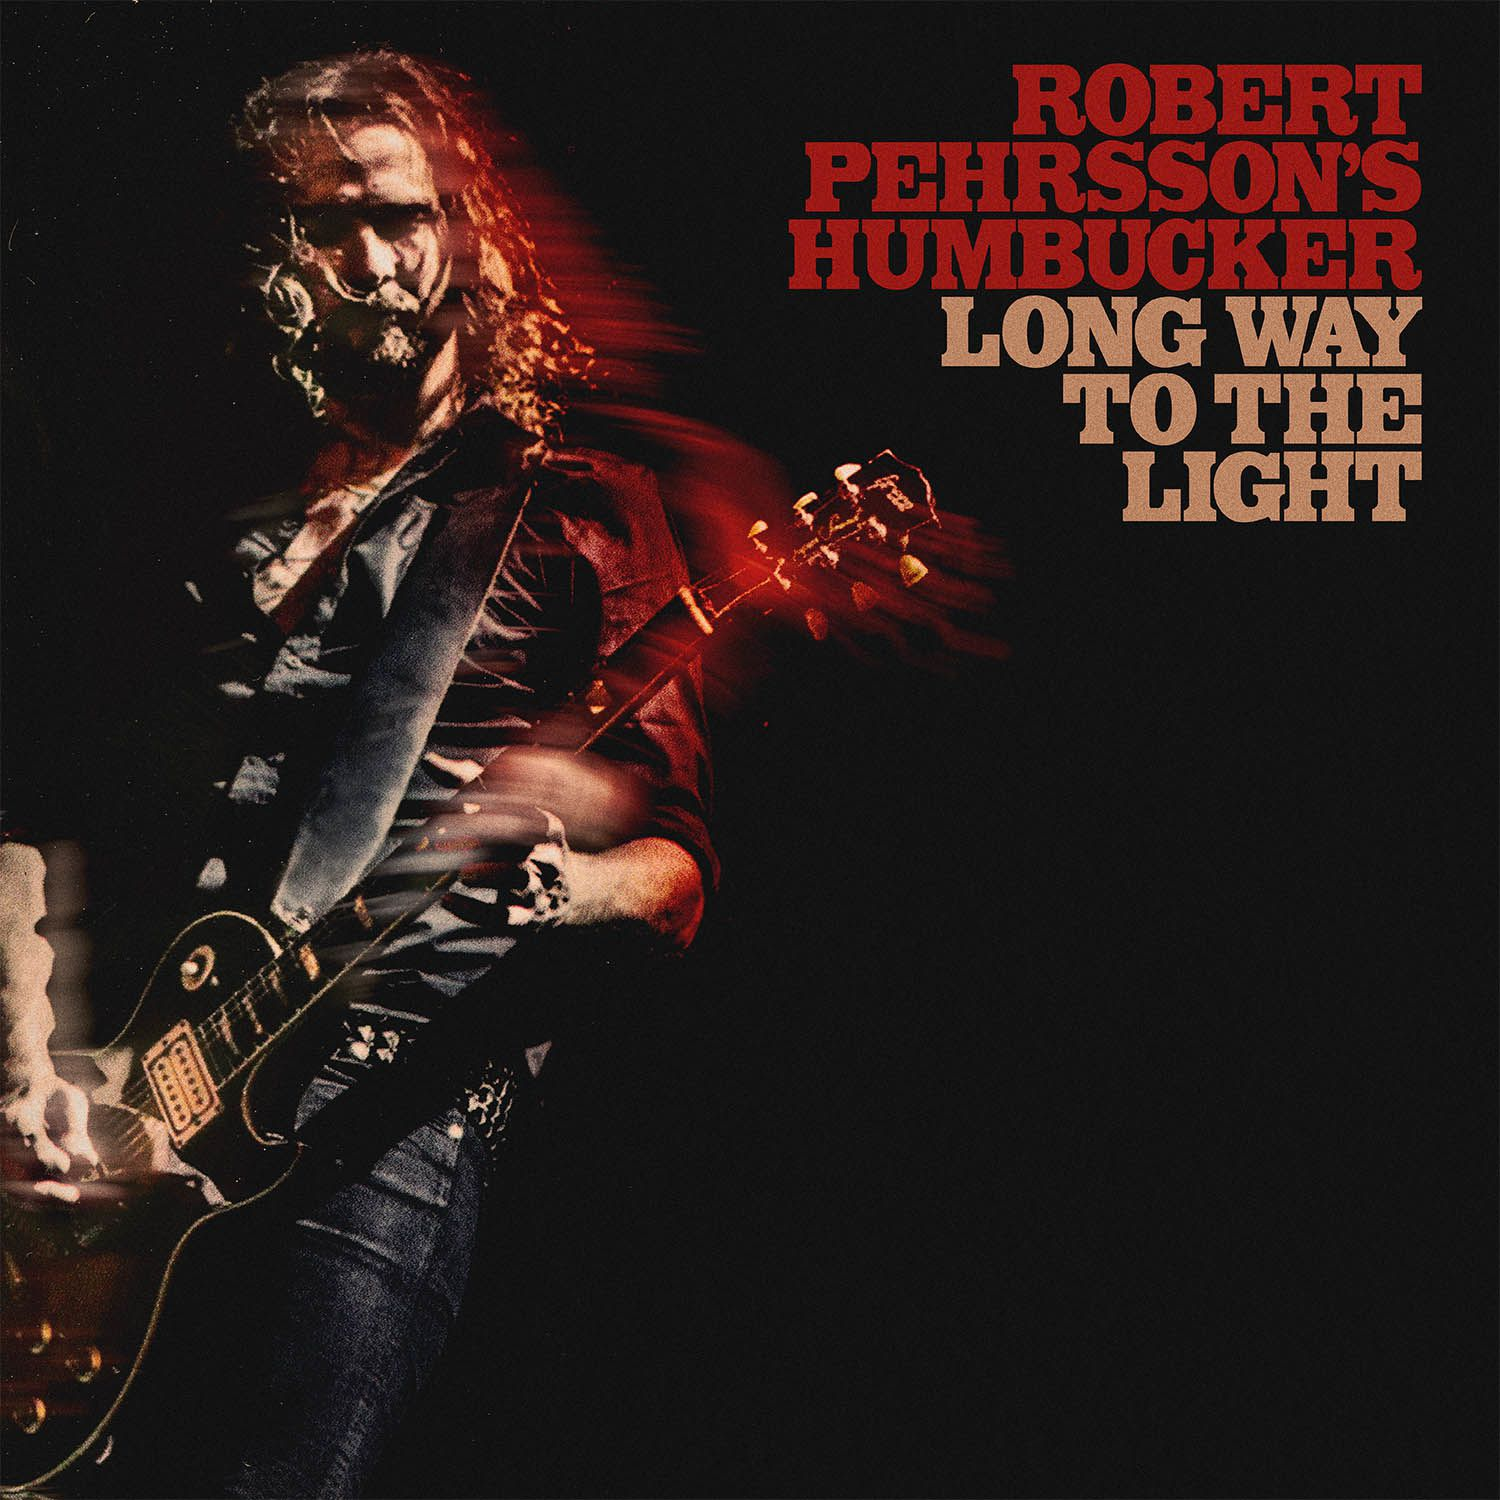 CD review ROBERT PEHRSSON'S HUMBUCKER &quot&#x3B;Long Way to the Light&quot&#x3B;